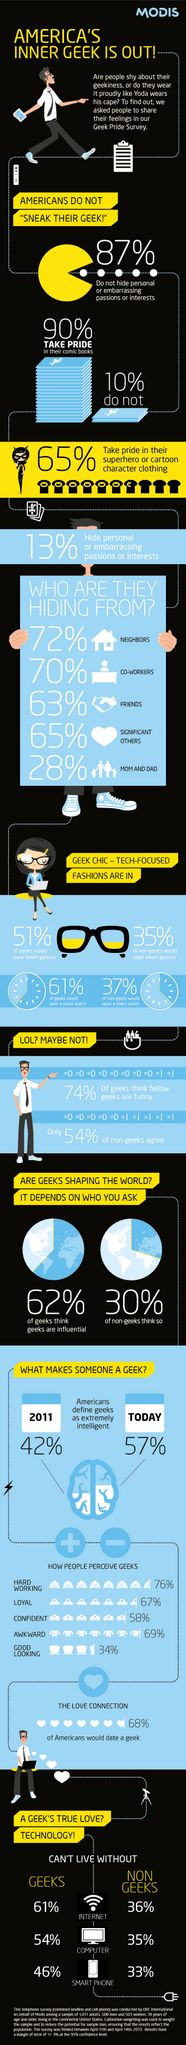 :) So..if I think this is funny ...Twitter / ChrisPirillo: 62% of geeks think geeks are ...